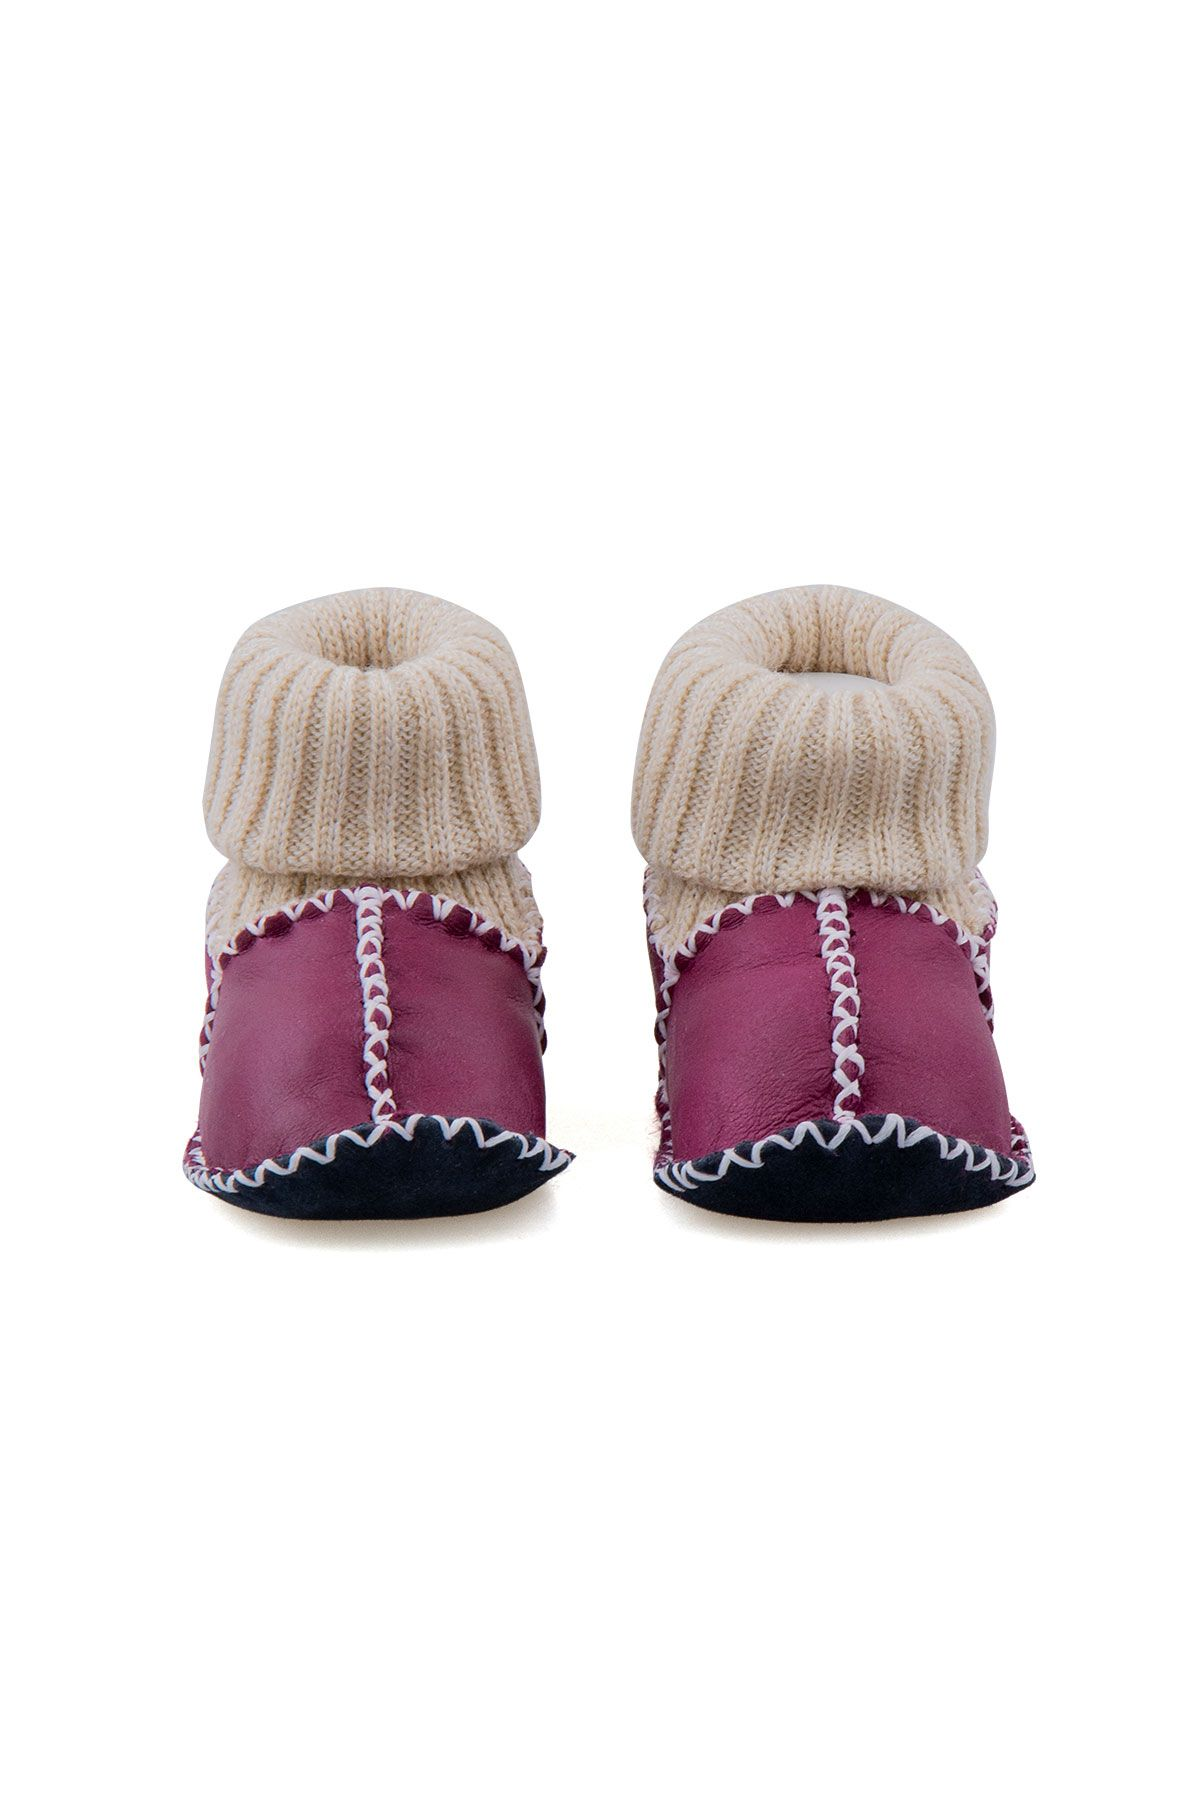 Pegia Shearling Baby's Booties With Socks 141107 Magenta